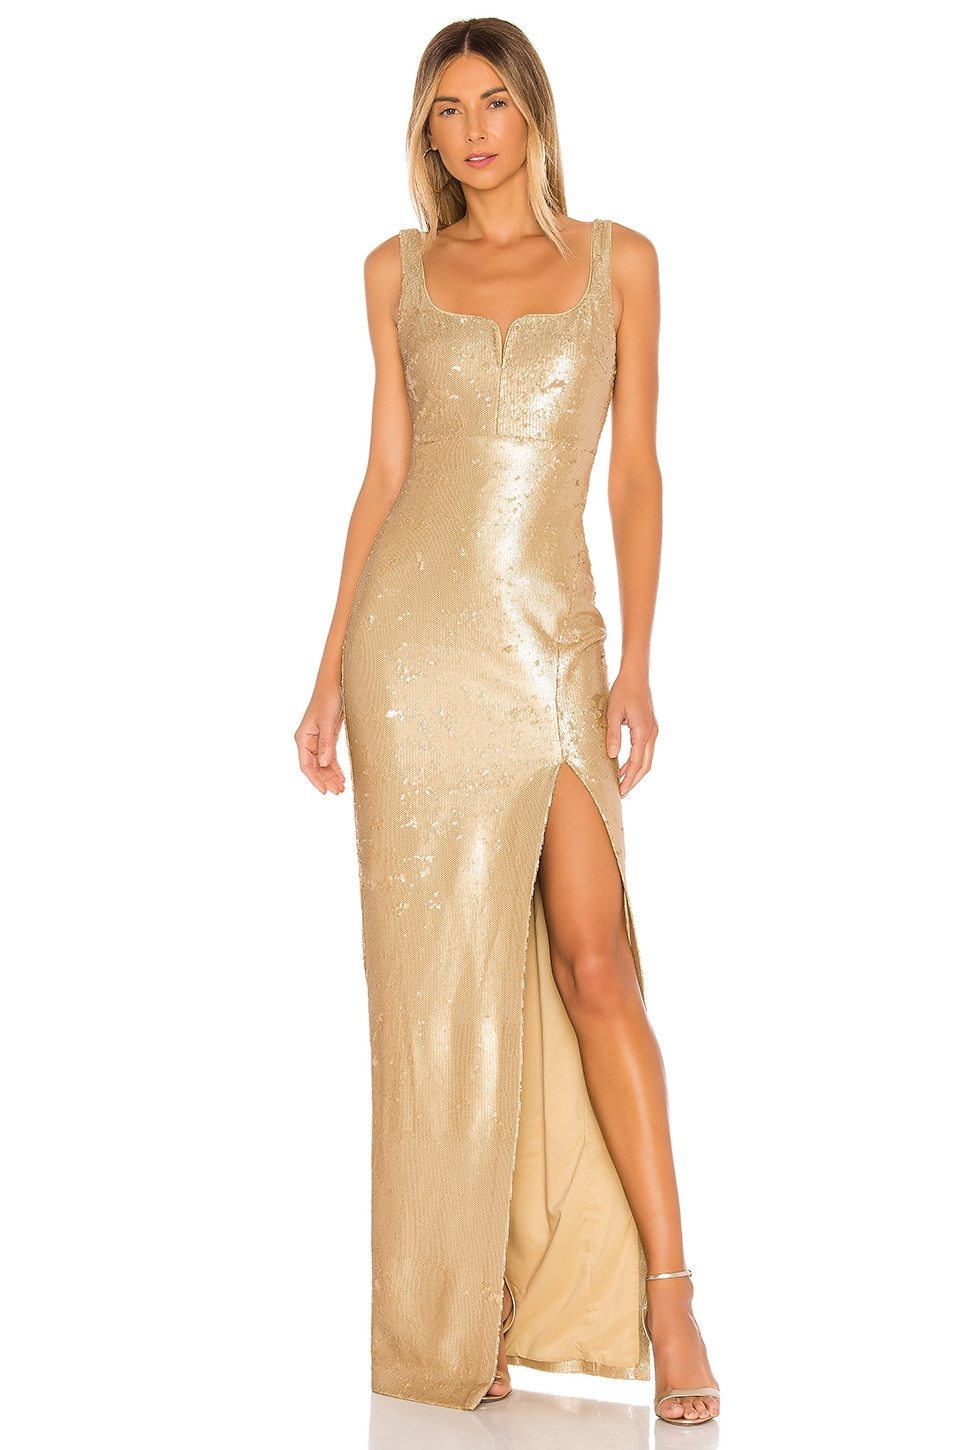 LIKELY Mineo Gown in Gold